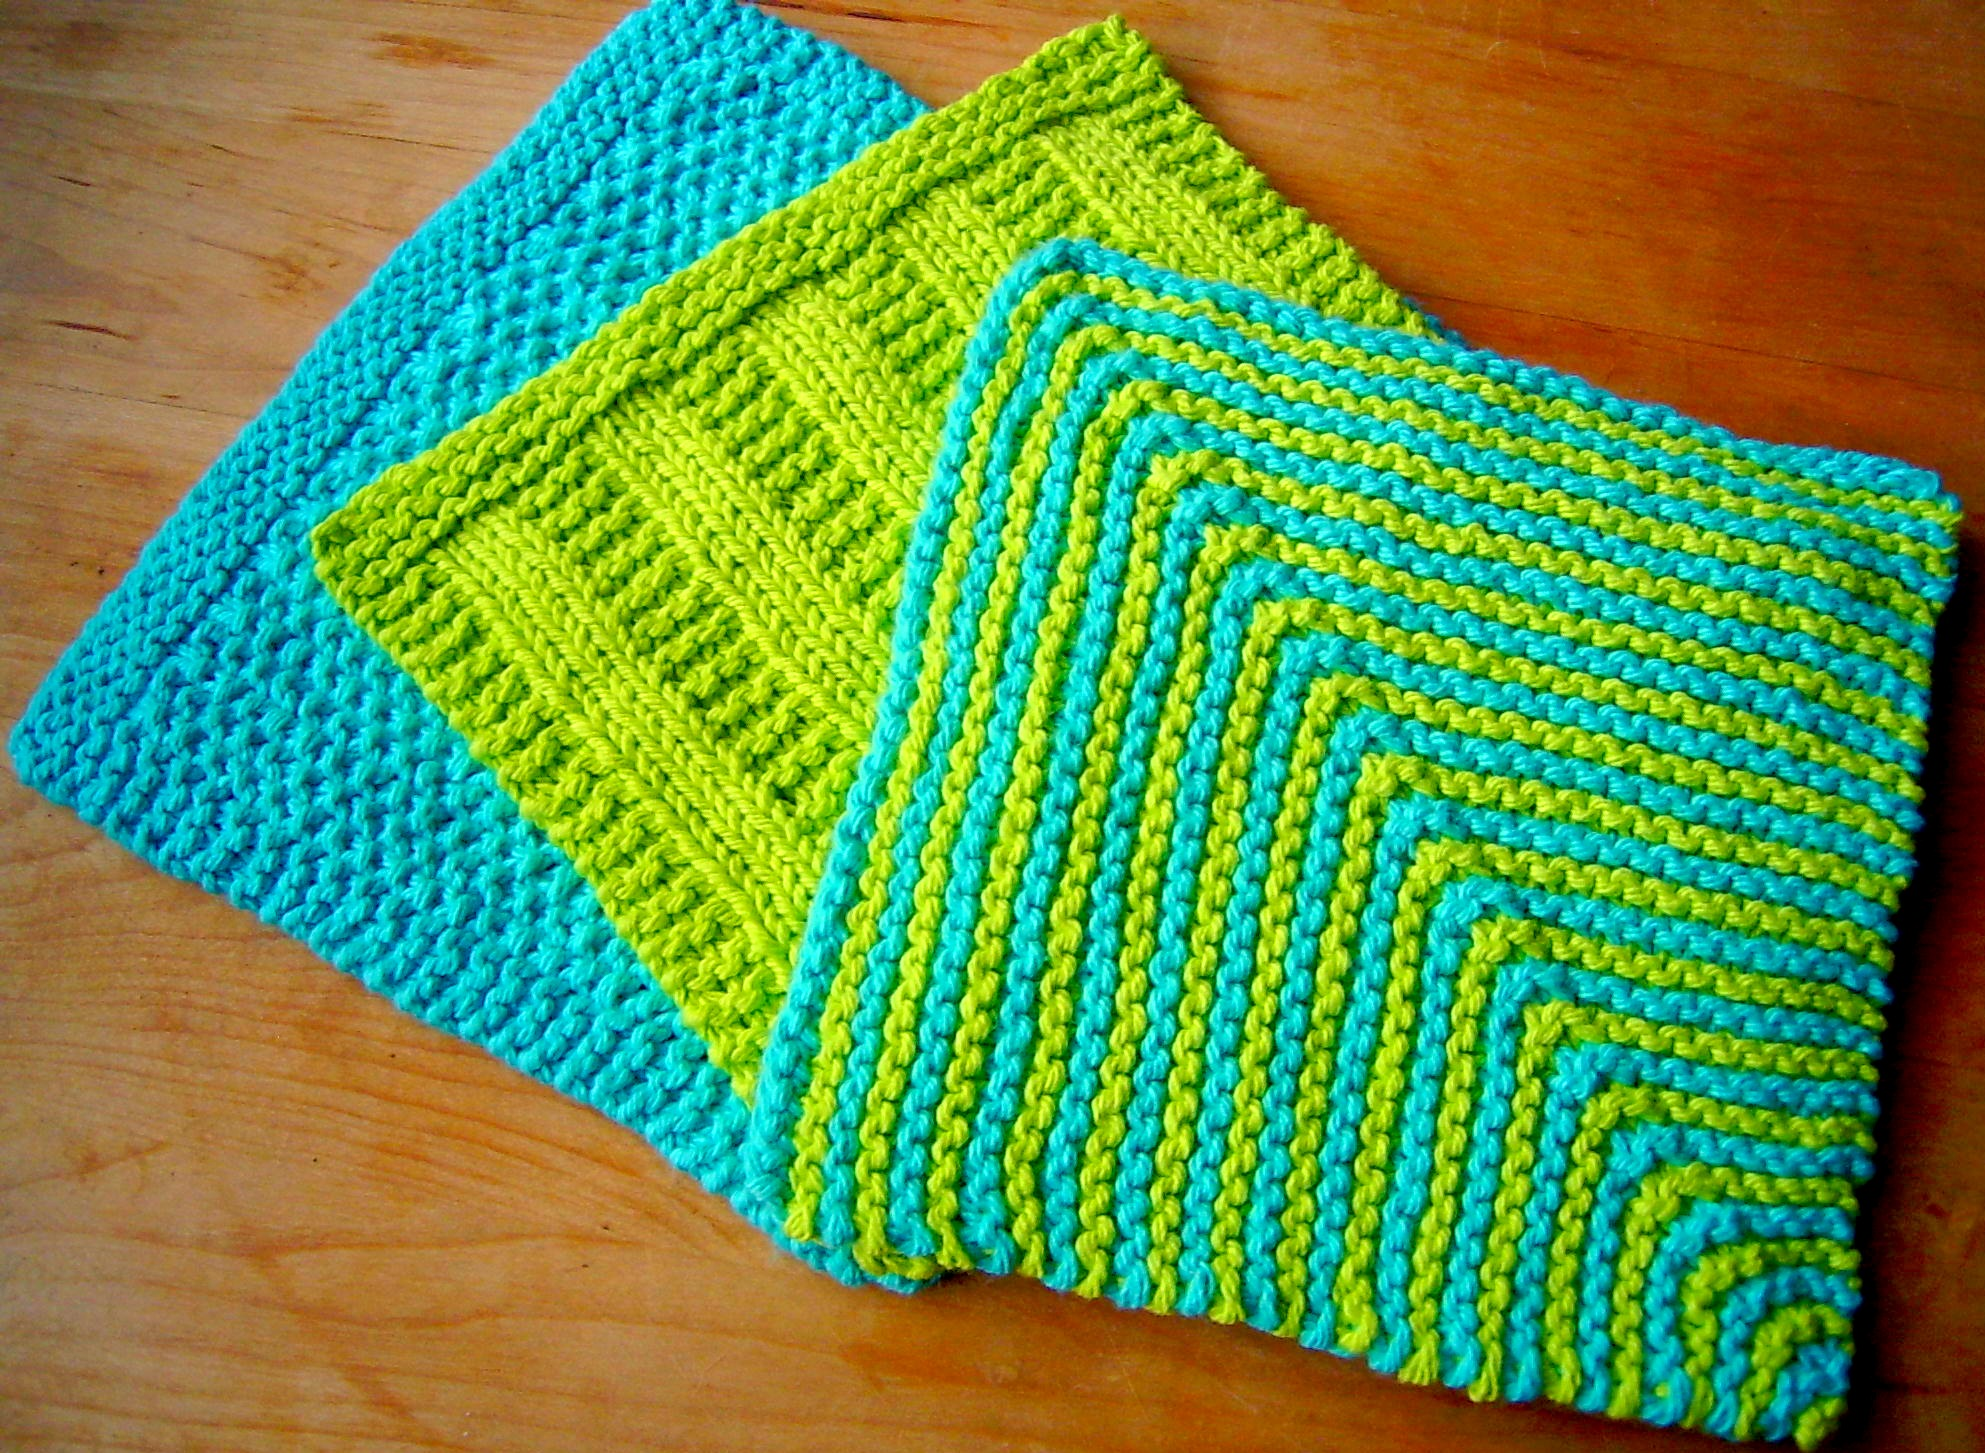 Dishcloth Knitting Patterns New Design